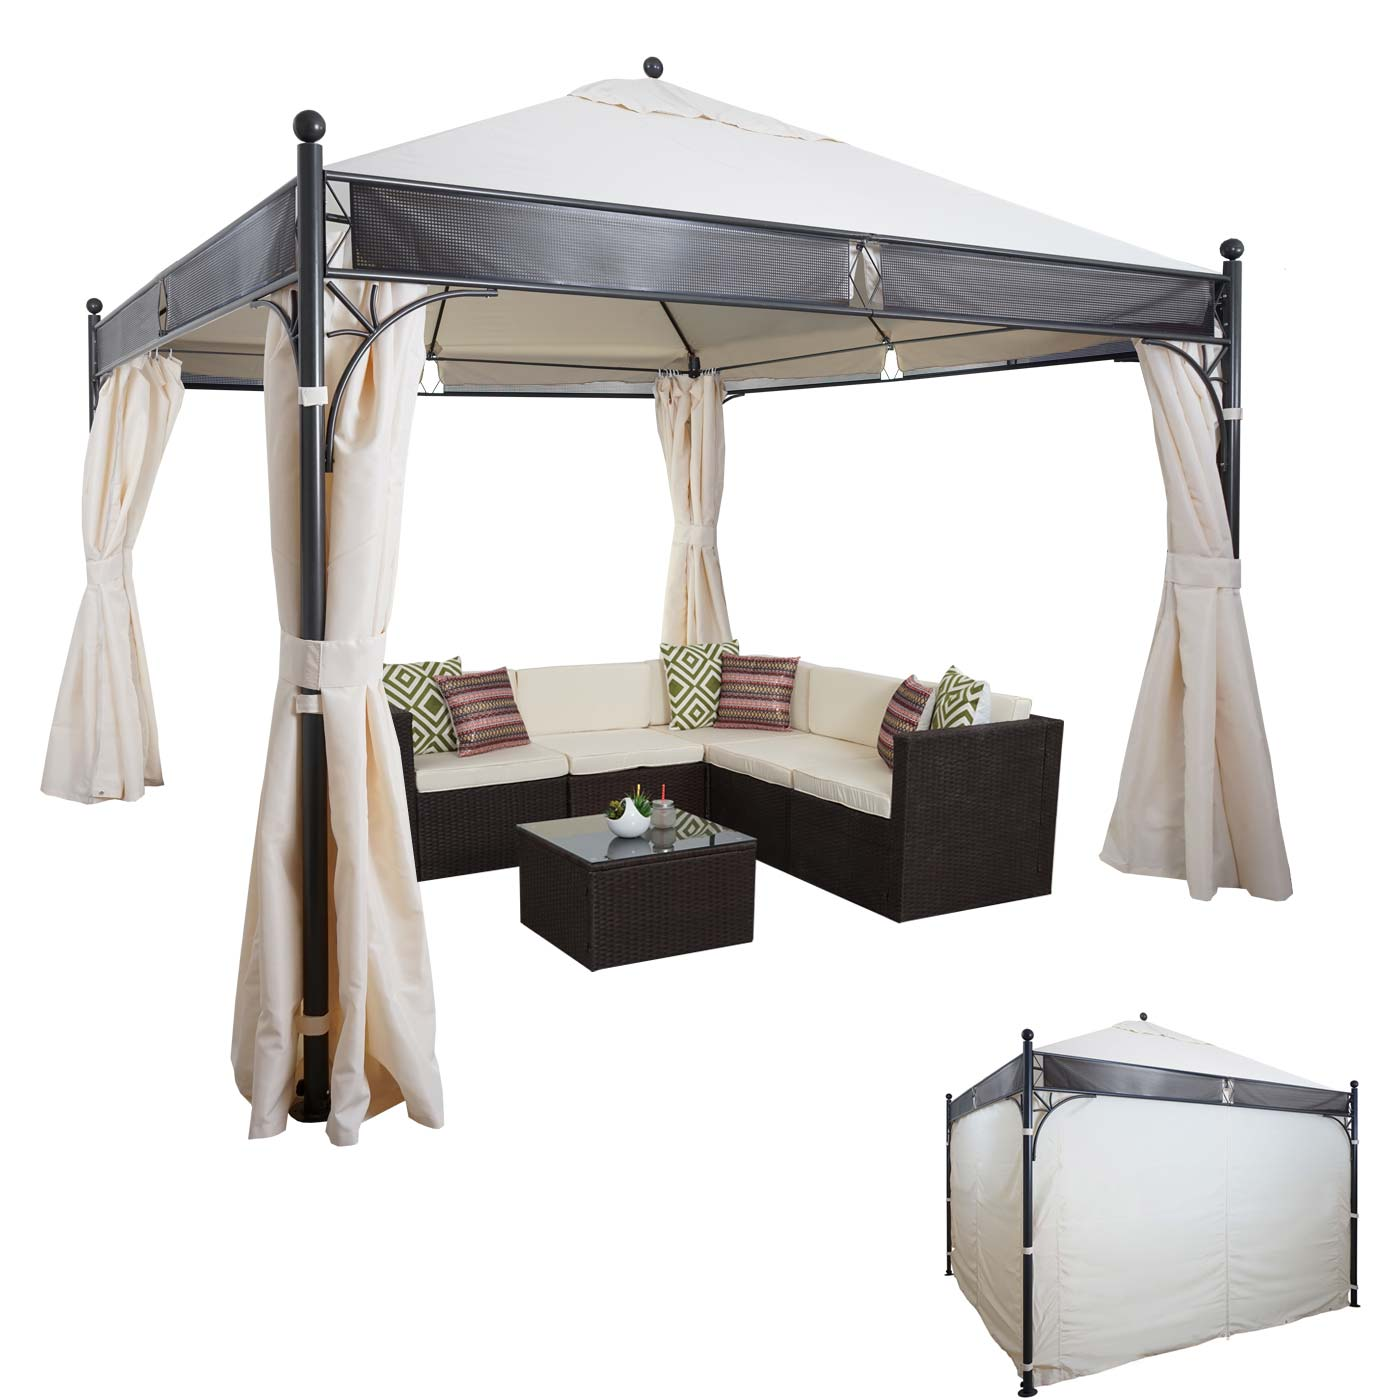 pergola hwc a38 garten pavillon 6cm stahl gestell mit seitenwand 3 5x3 5cm creme. Black Bedroom Furniture Sets. Home Design Ideas